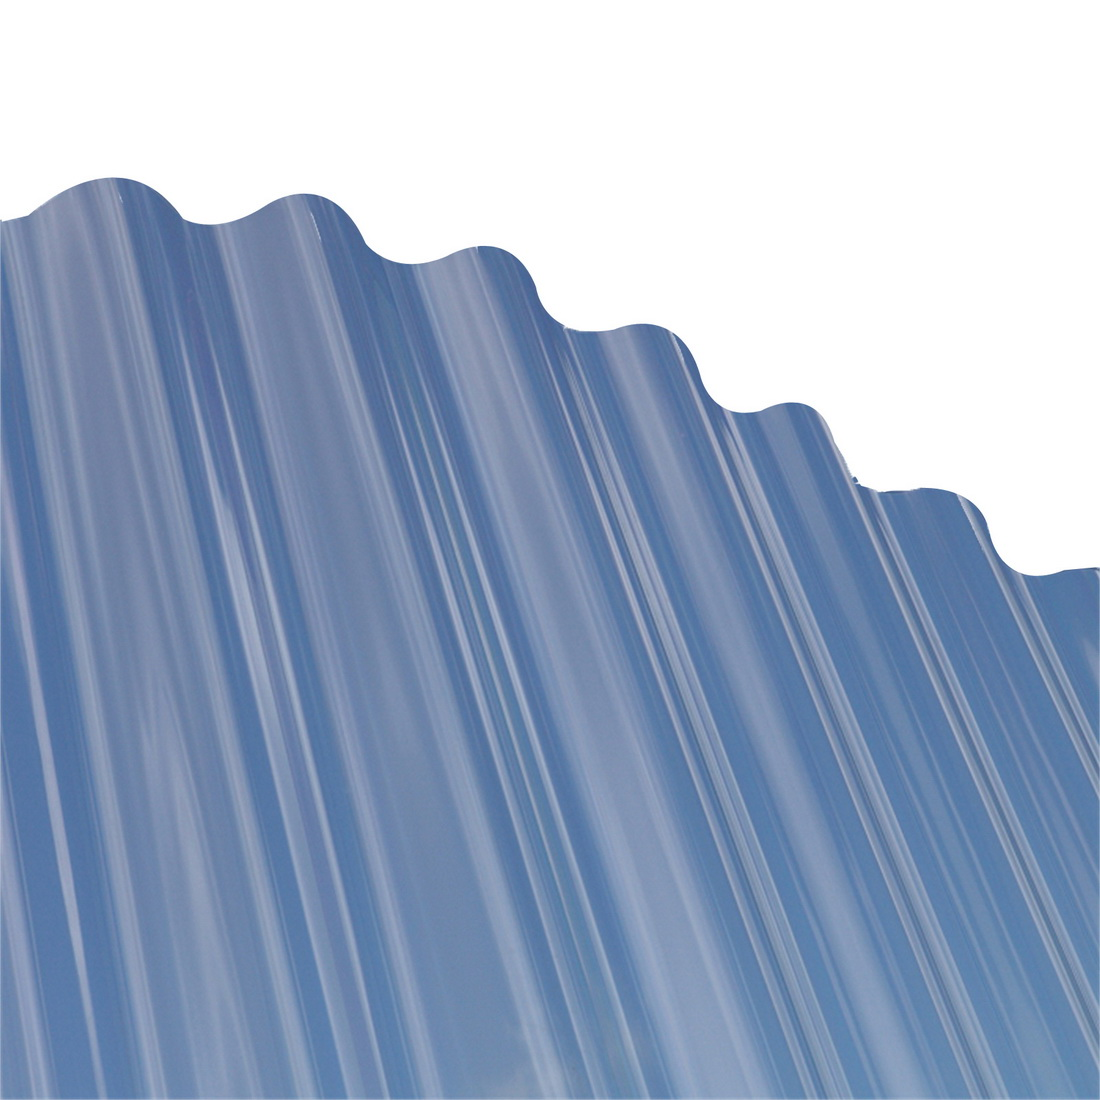 Tufclad Ultra Corrugated Roofing 1800 x 860 x 0.8mm Polycarbonate Clear TFU-CORR-CLR-1800